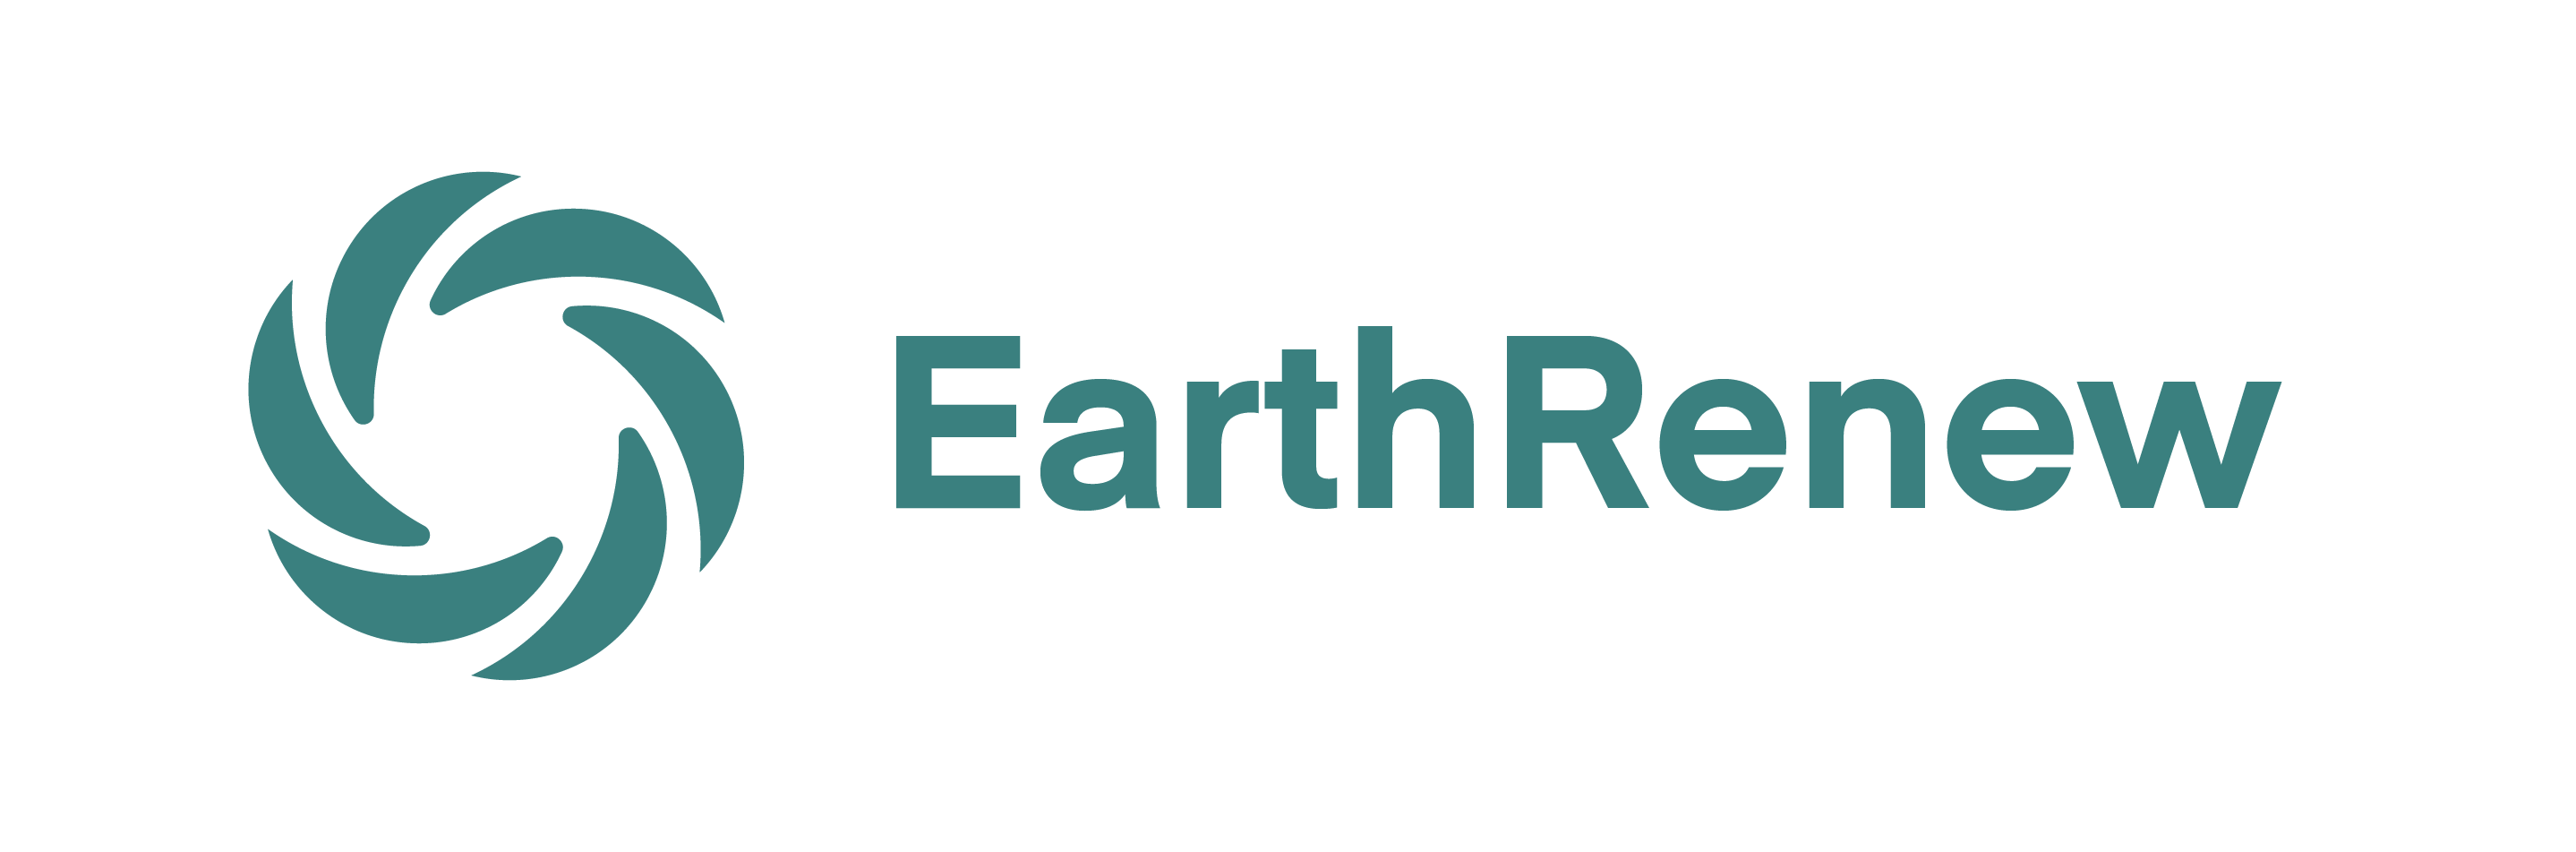 EarthRenew Chosen to Submit an International Consortium Project Proposal